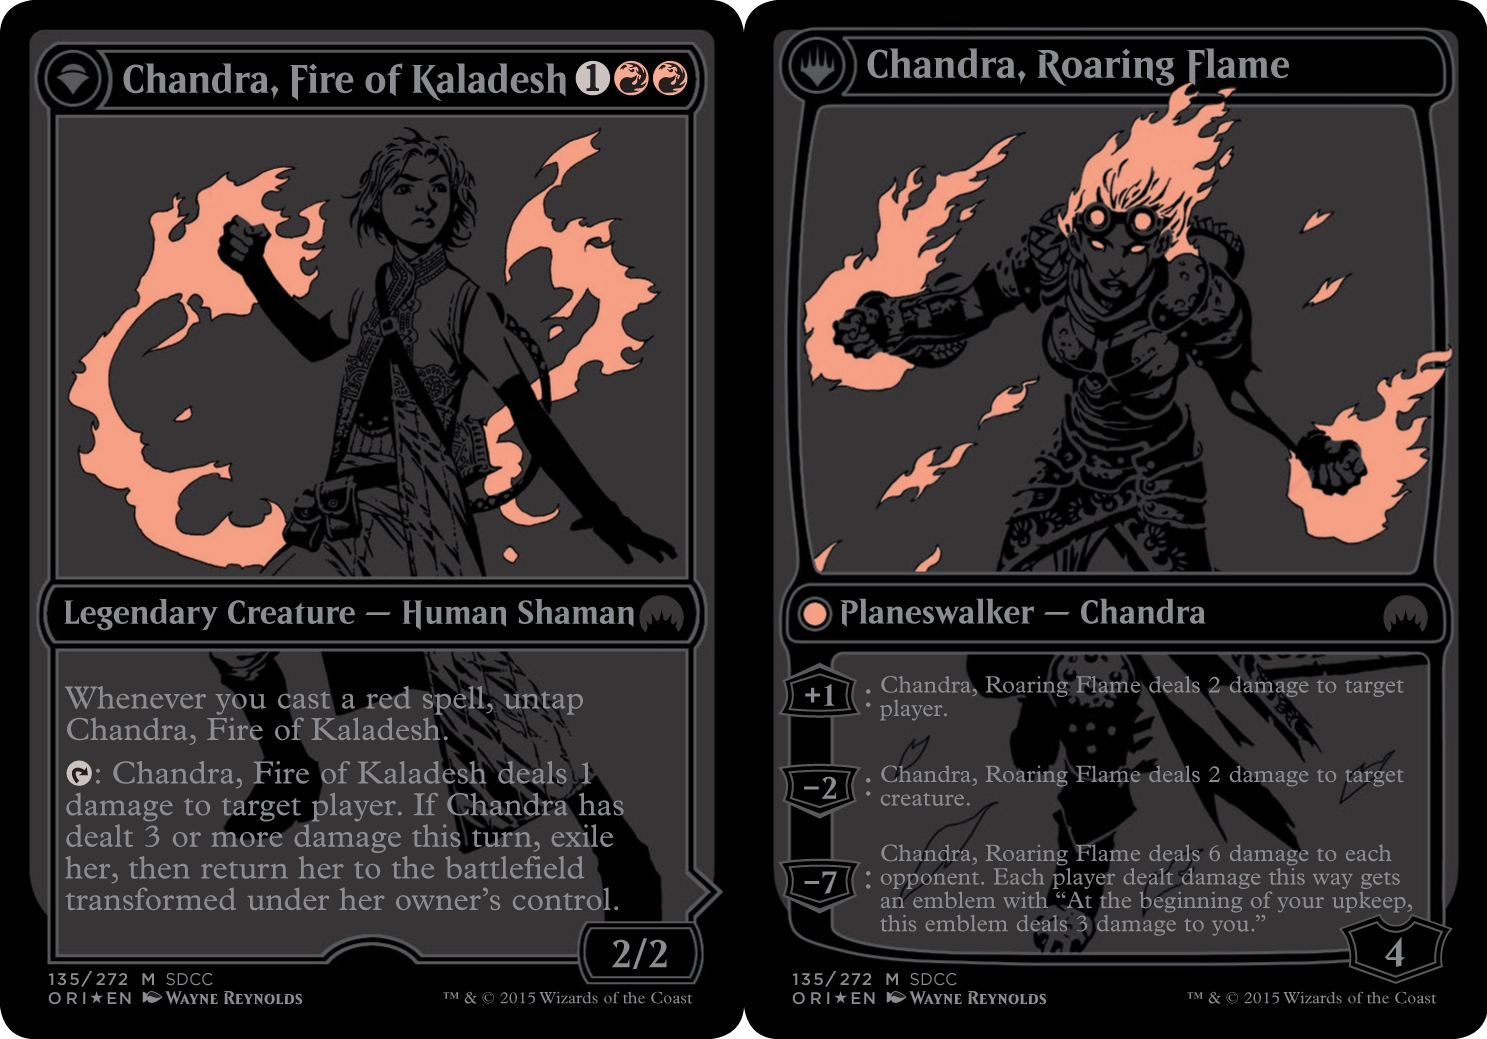 Chandra, Fire of Kaladesh // Chandra, Roaring Flame - SDCC 2015 Exclusive Promo